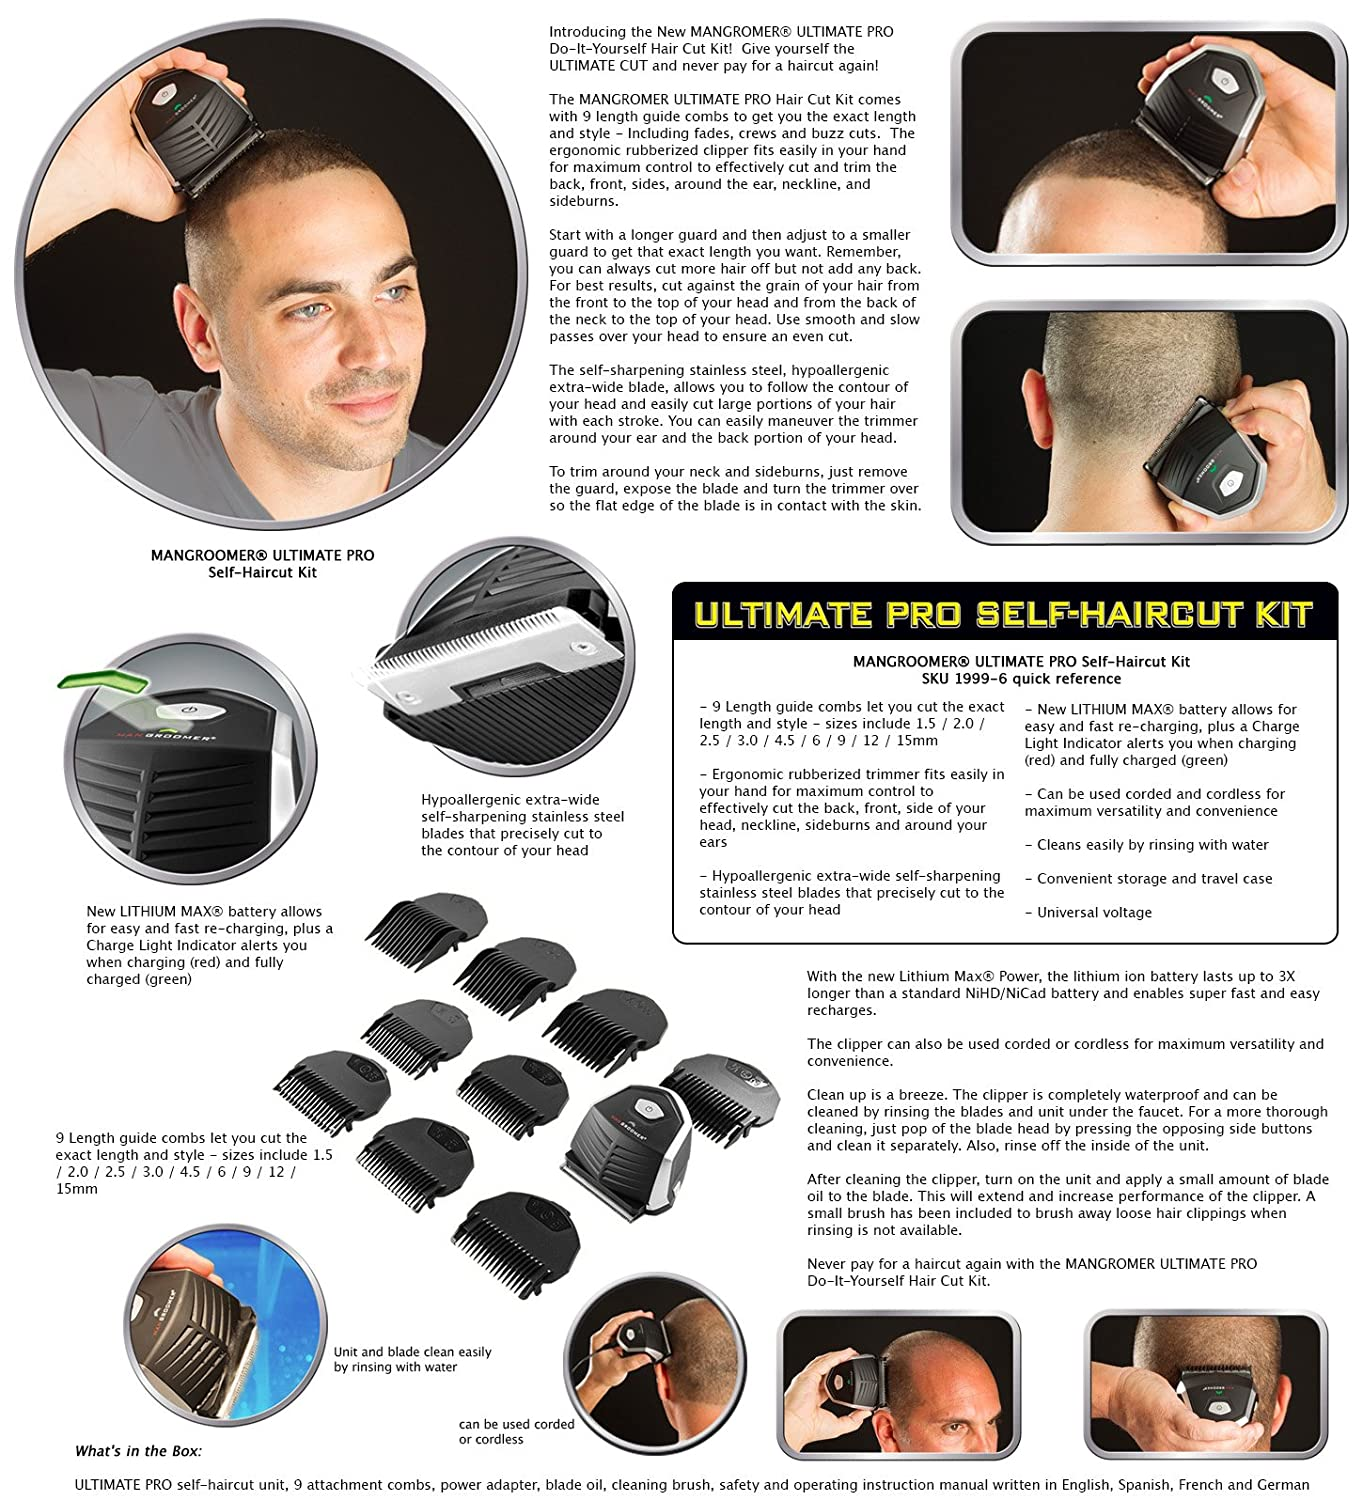 Do it yourself haircut kit hair mangroomer ultimate pro self haircut kit with lithium max power solutioingenieria Image collections